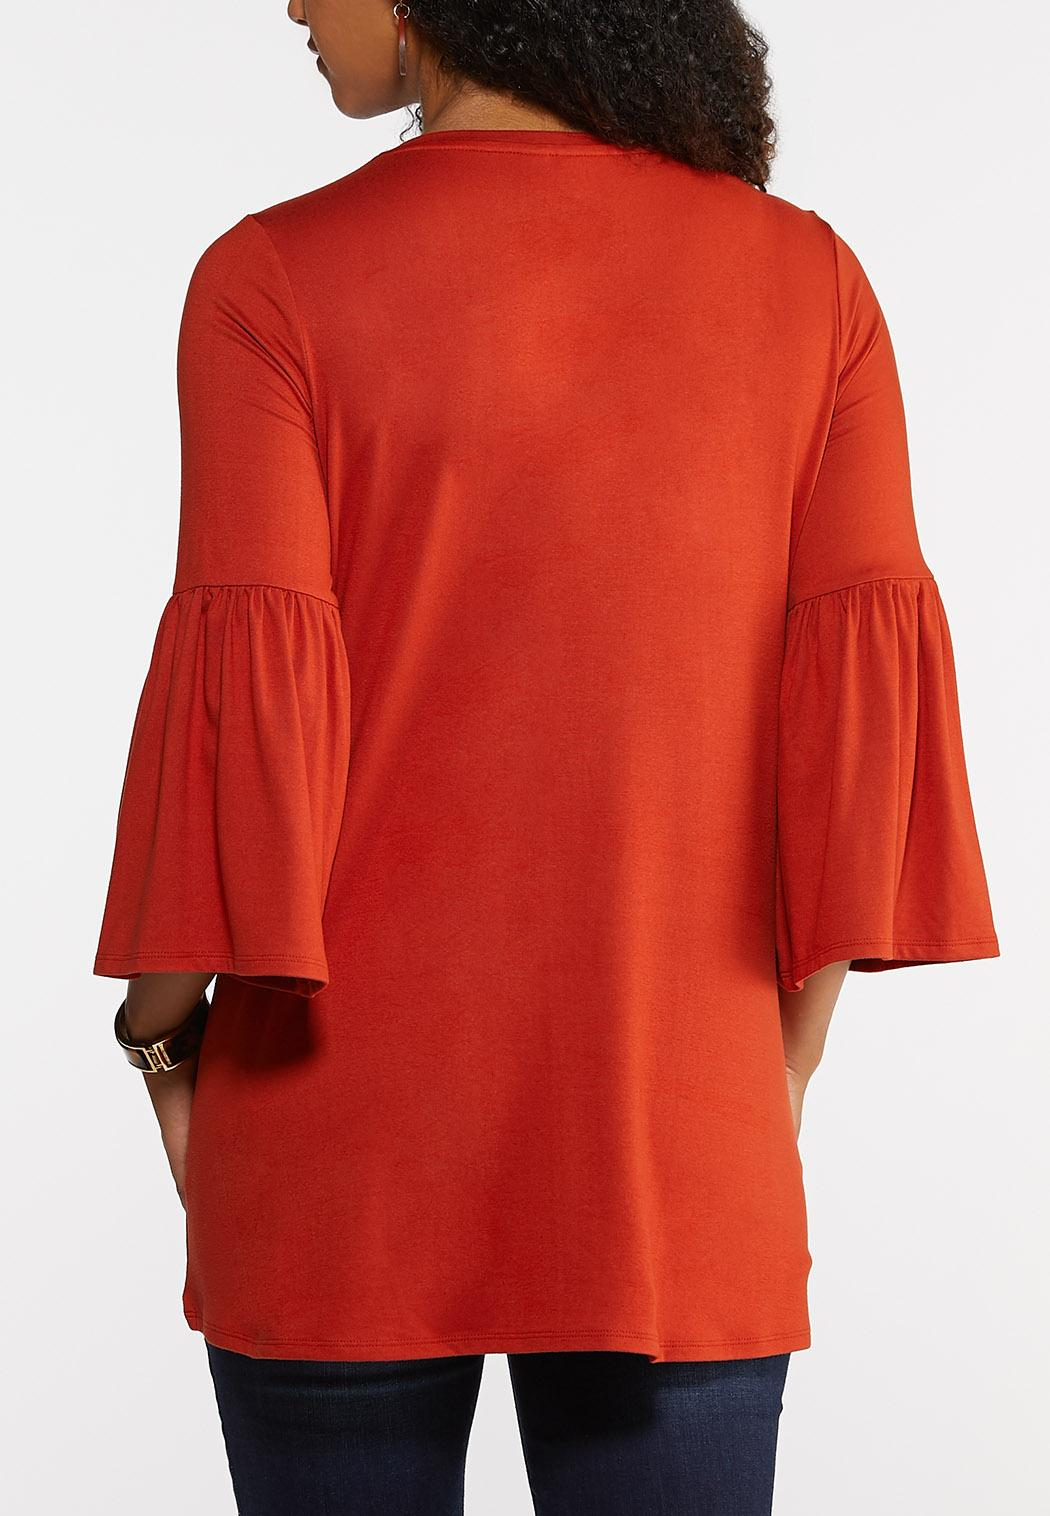 Plus Size Solid Bell Sleeve Top (Item #43947045)